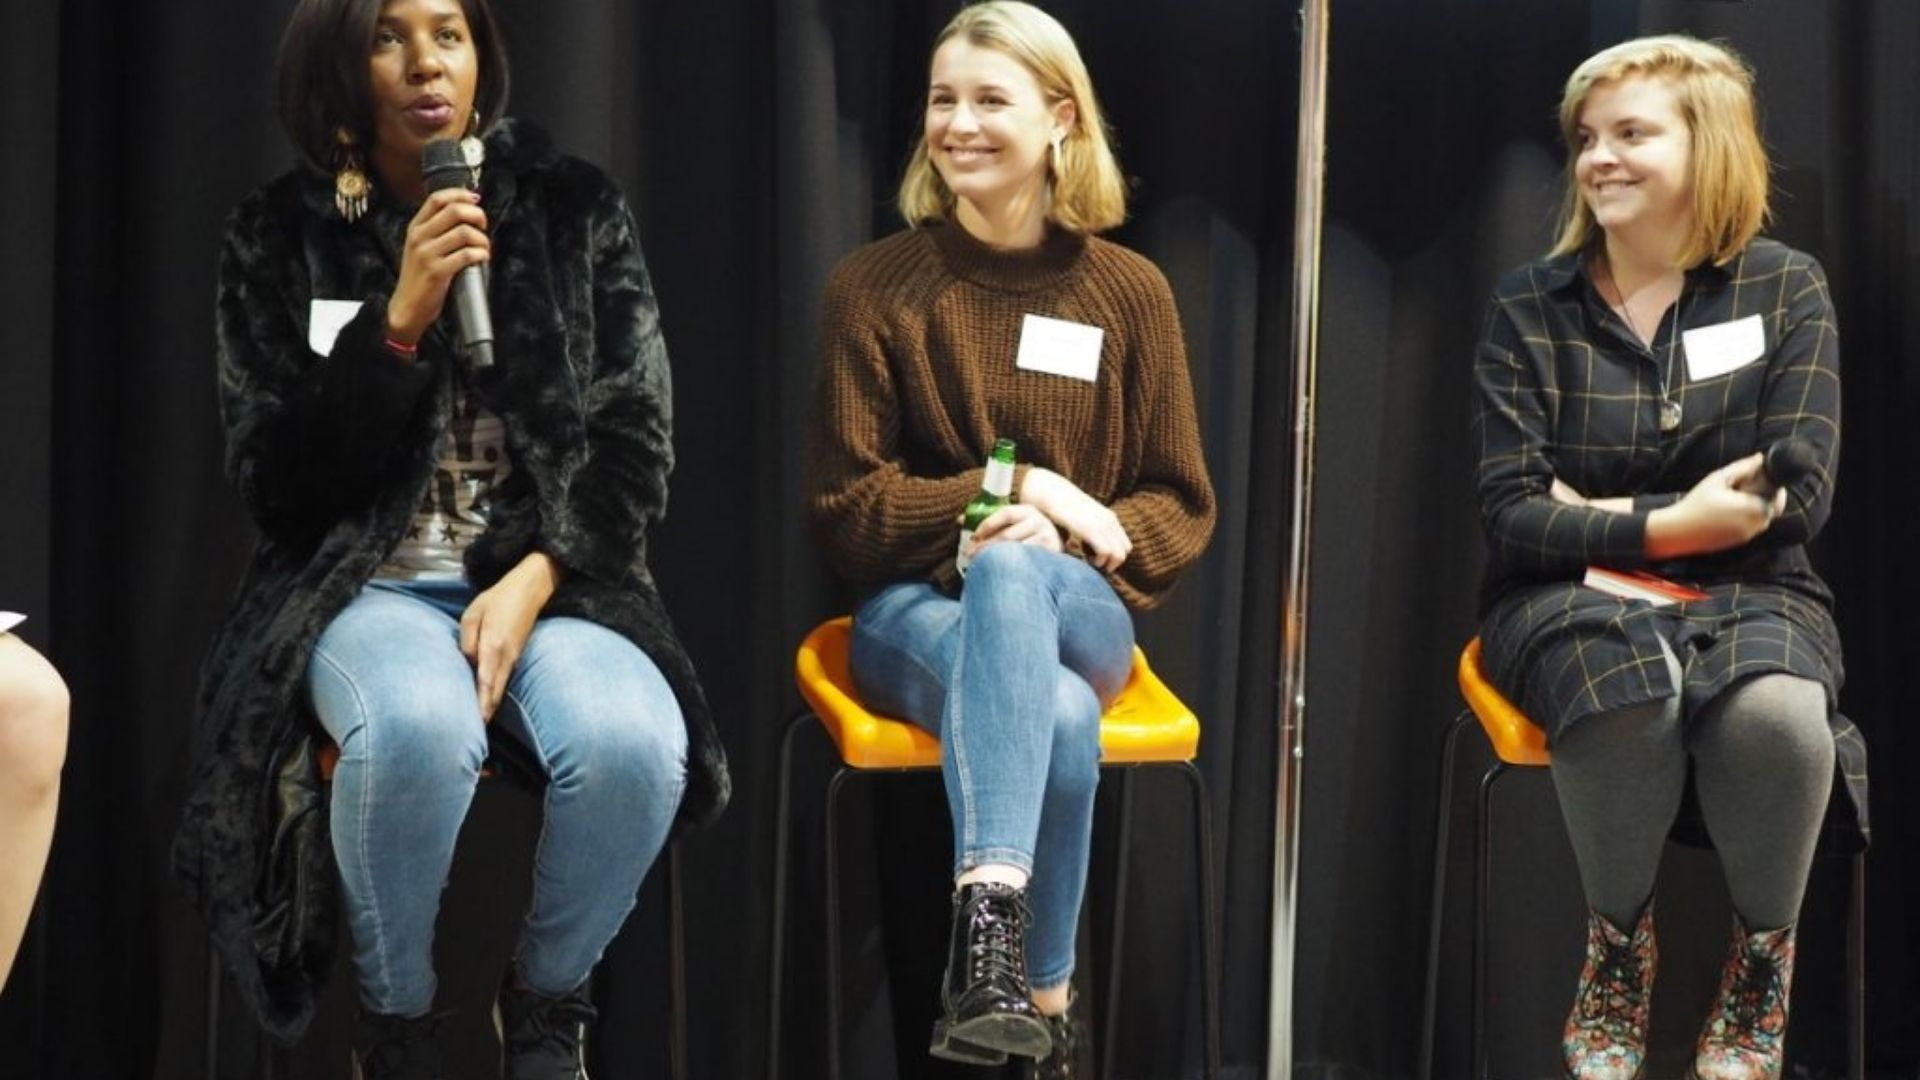 Three women sat on high yellow chairs holding microphones.